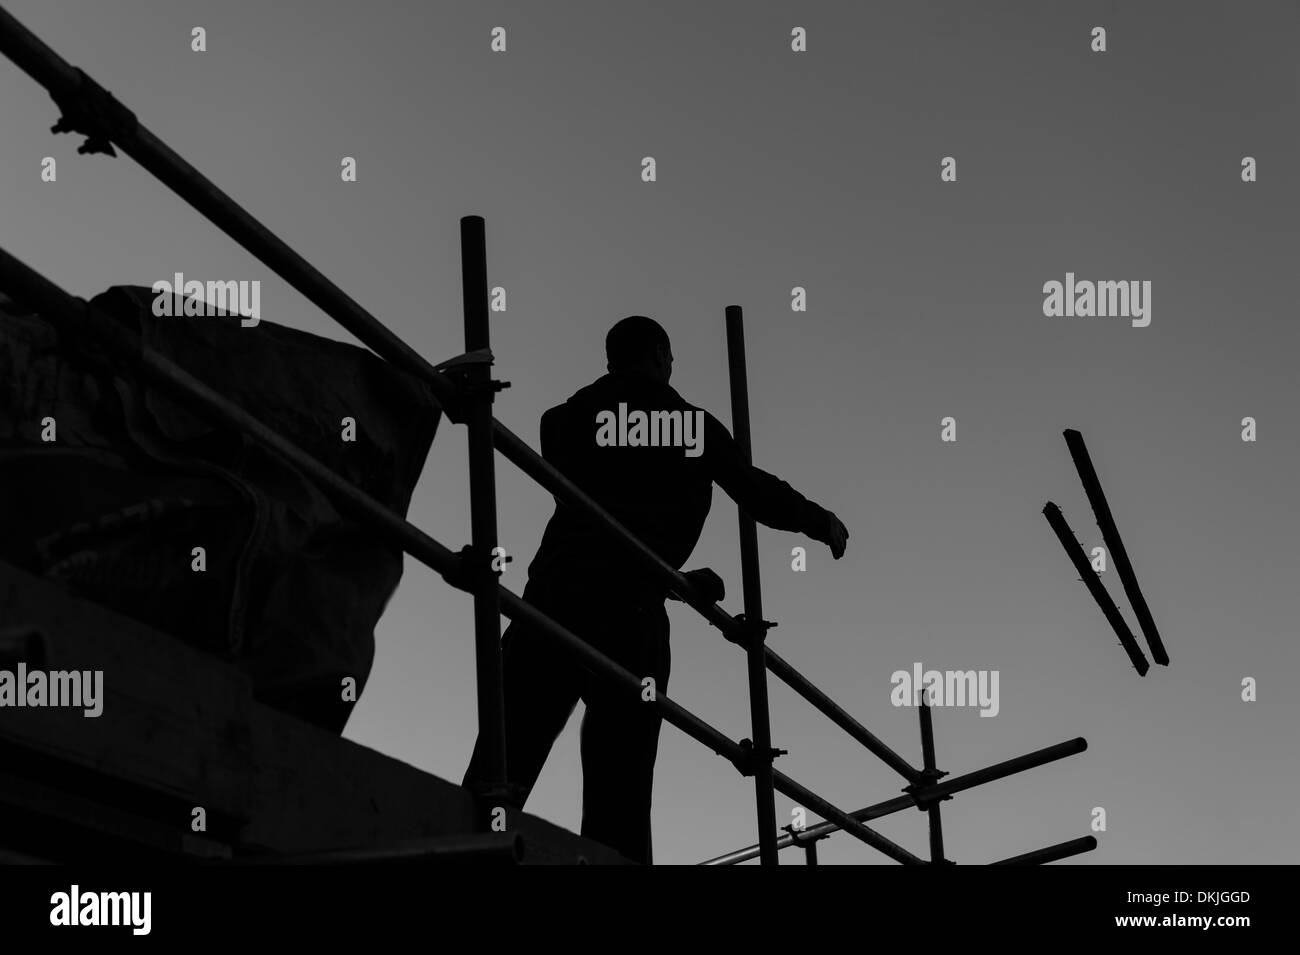 Silhouetted workman - a roofer - throwing two wooden planks off a scaffold. Home improvement renovation concept. - Stock Image